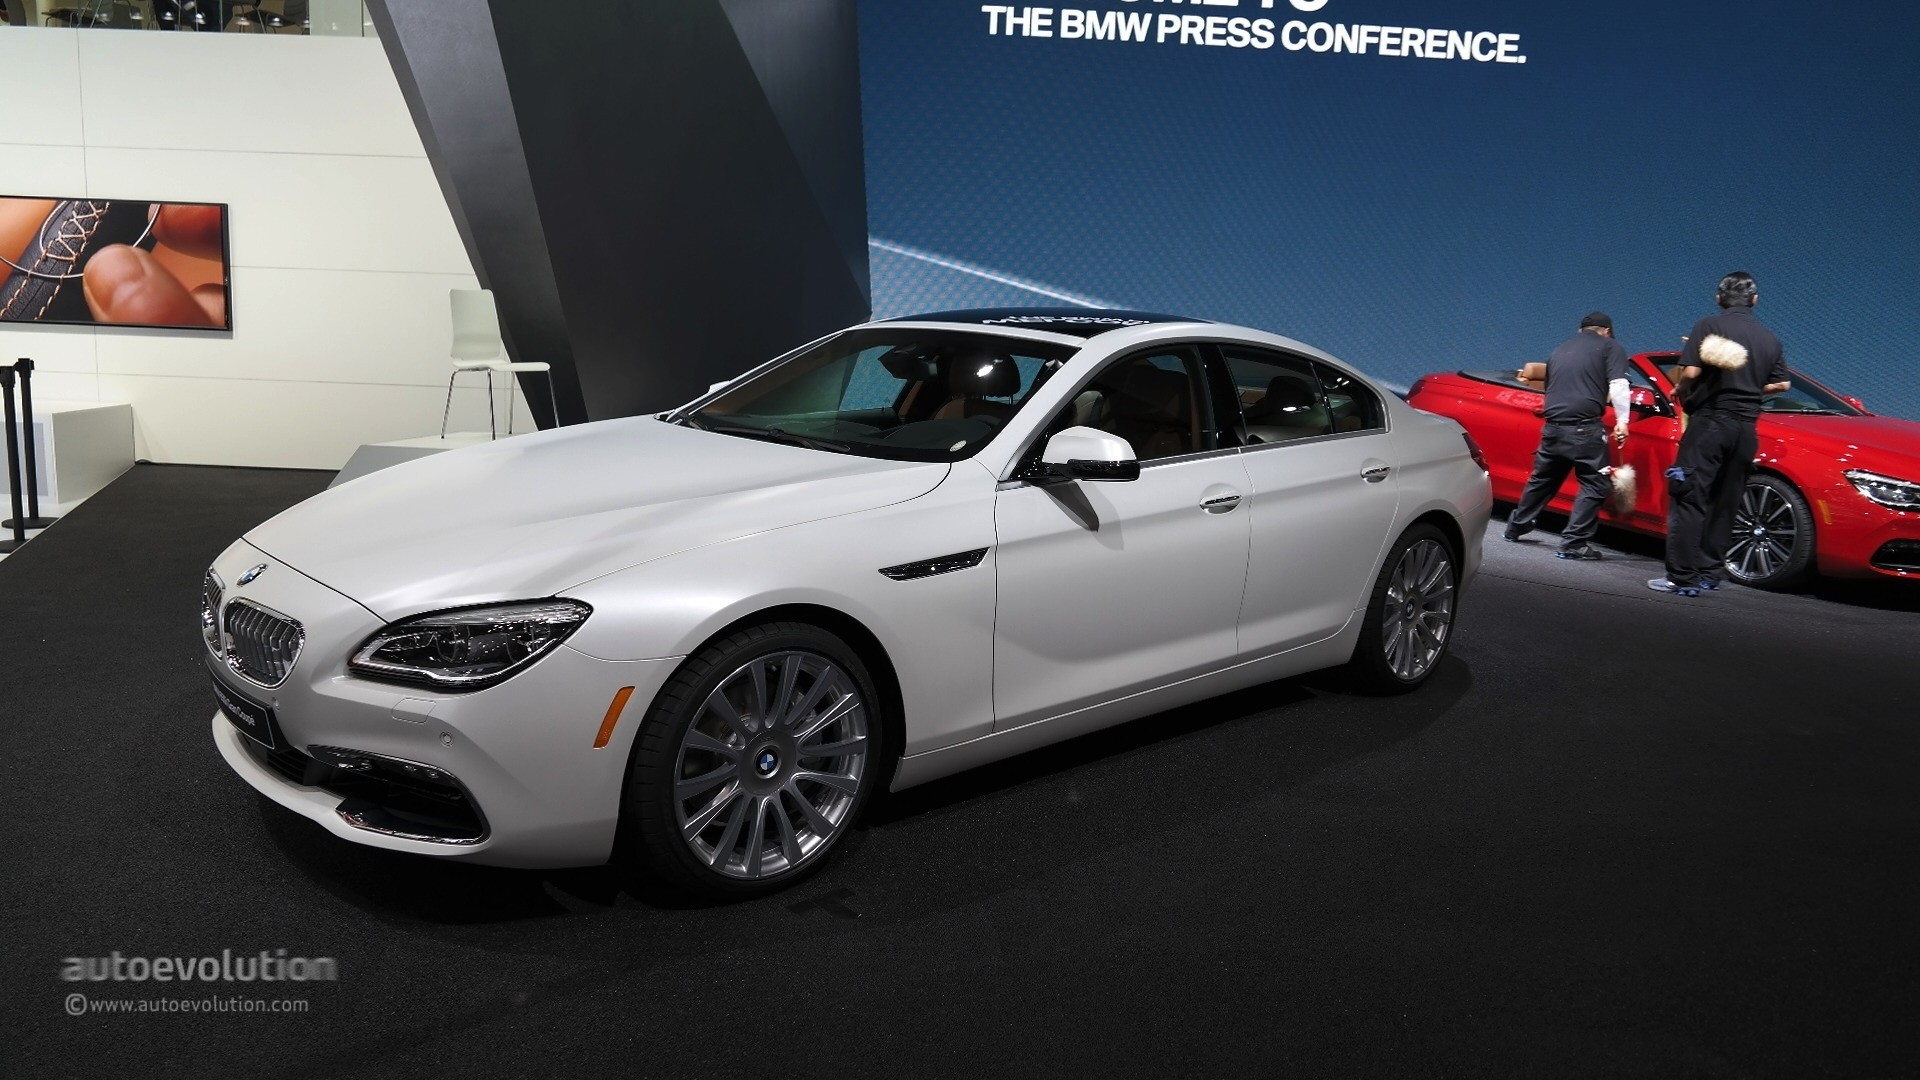 2015 bmw 6 series facelift coupe and gran coupe show class. Black Bedroom Furniture Sets. Home Design Ideas